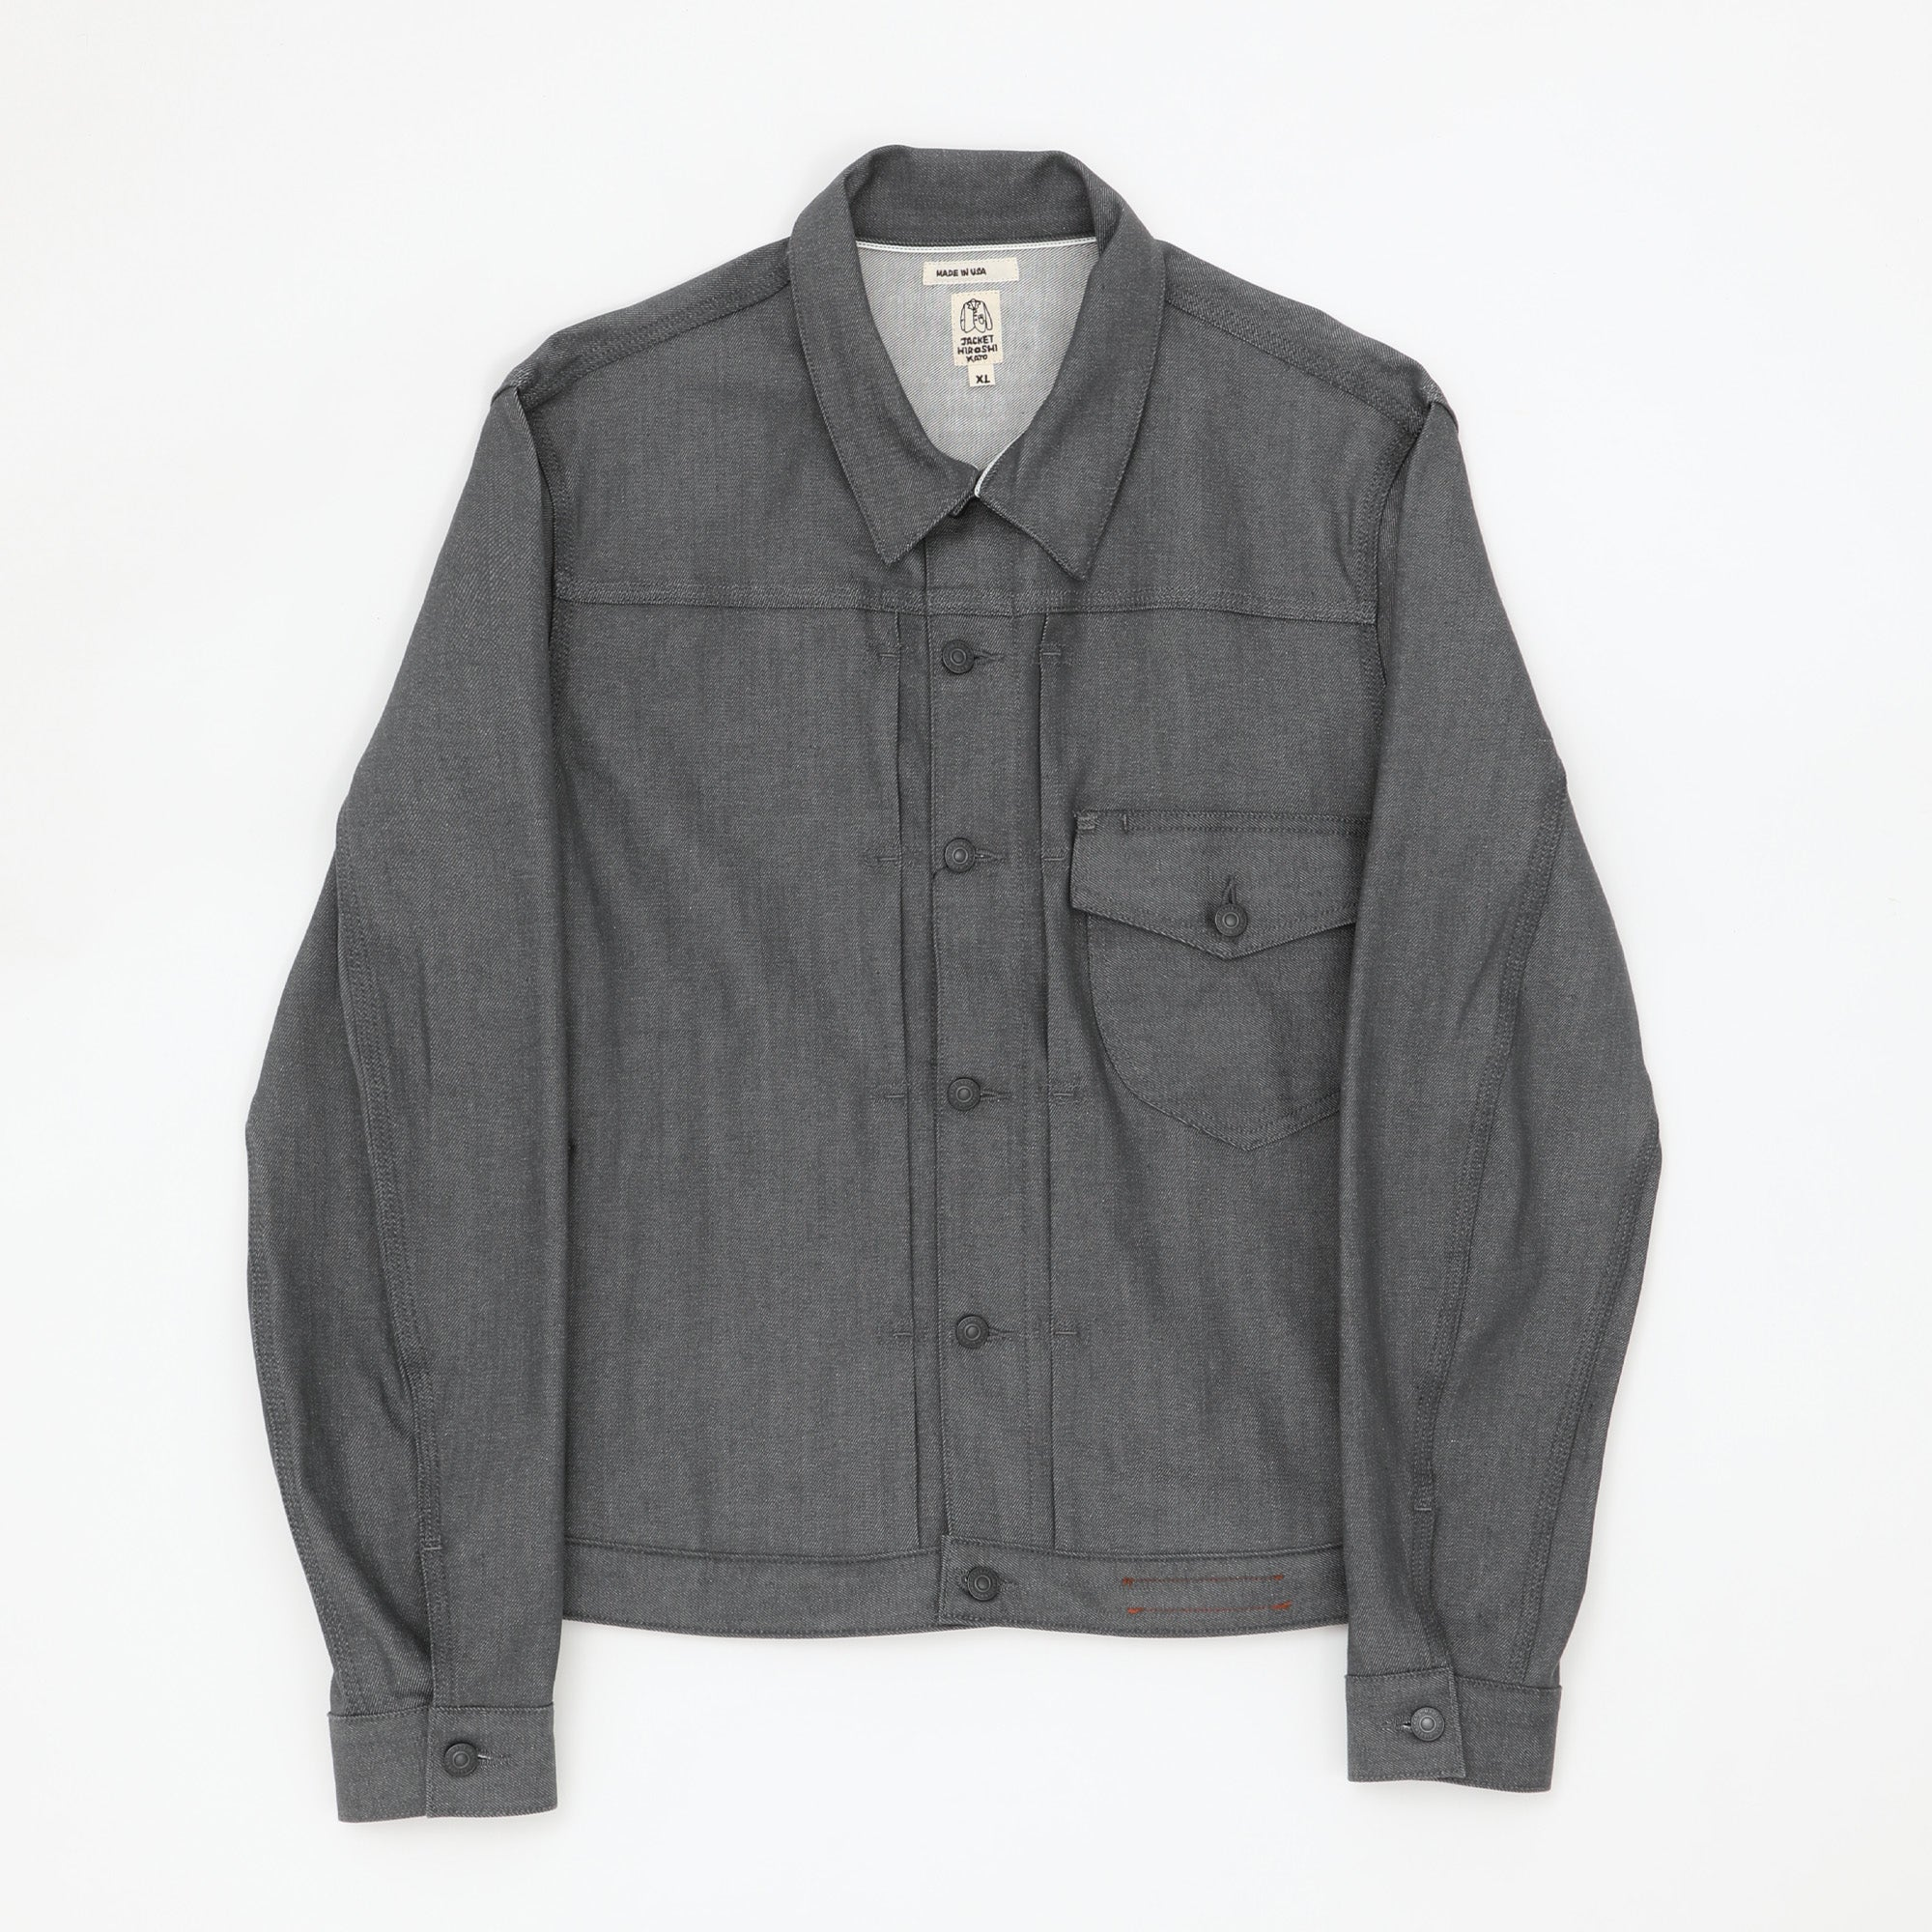 The Blade 10.5oz Selvedge Denim Jacket